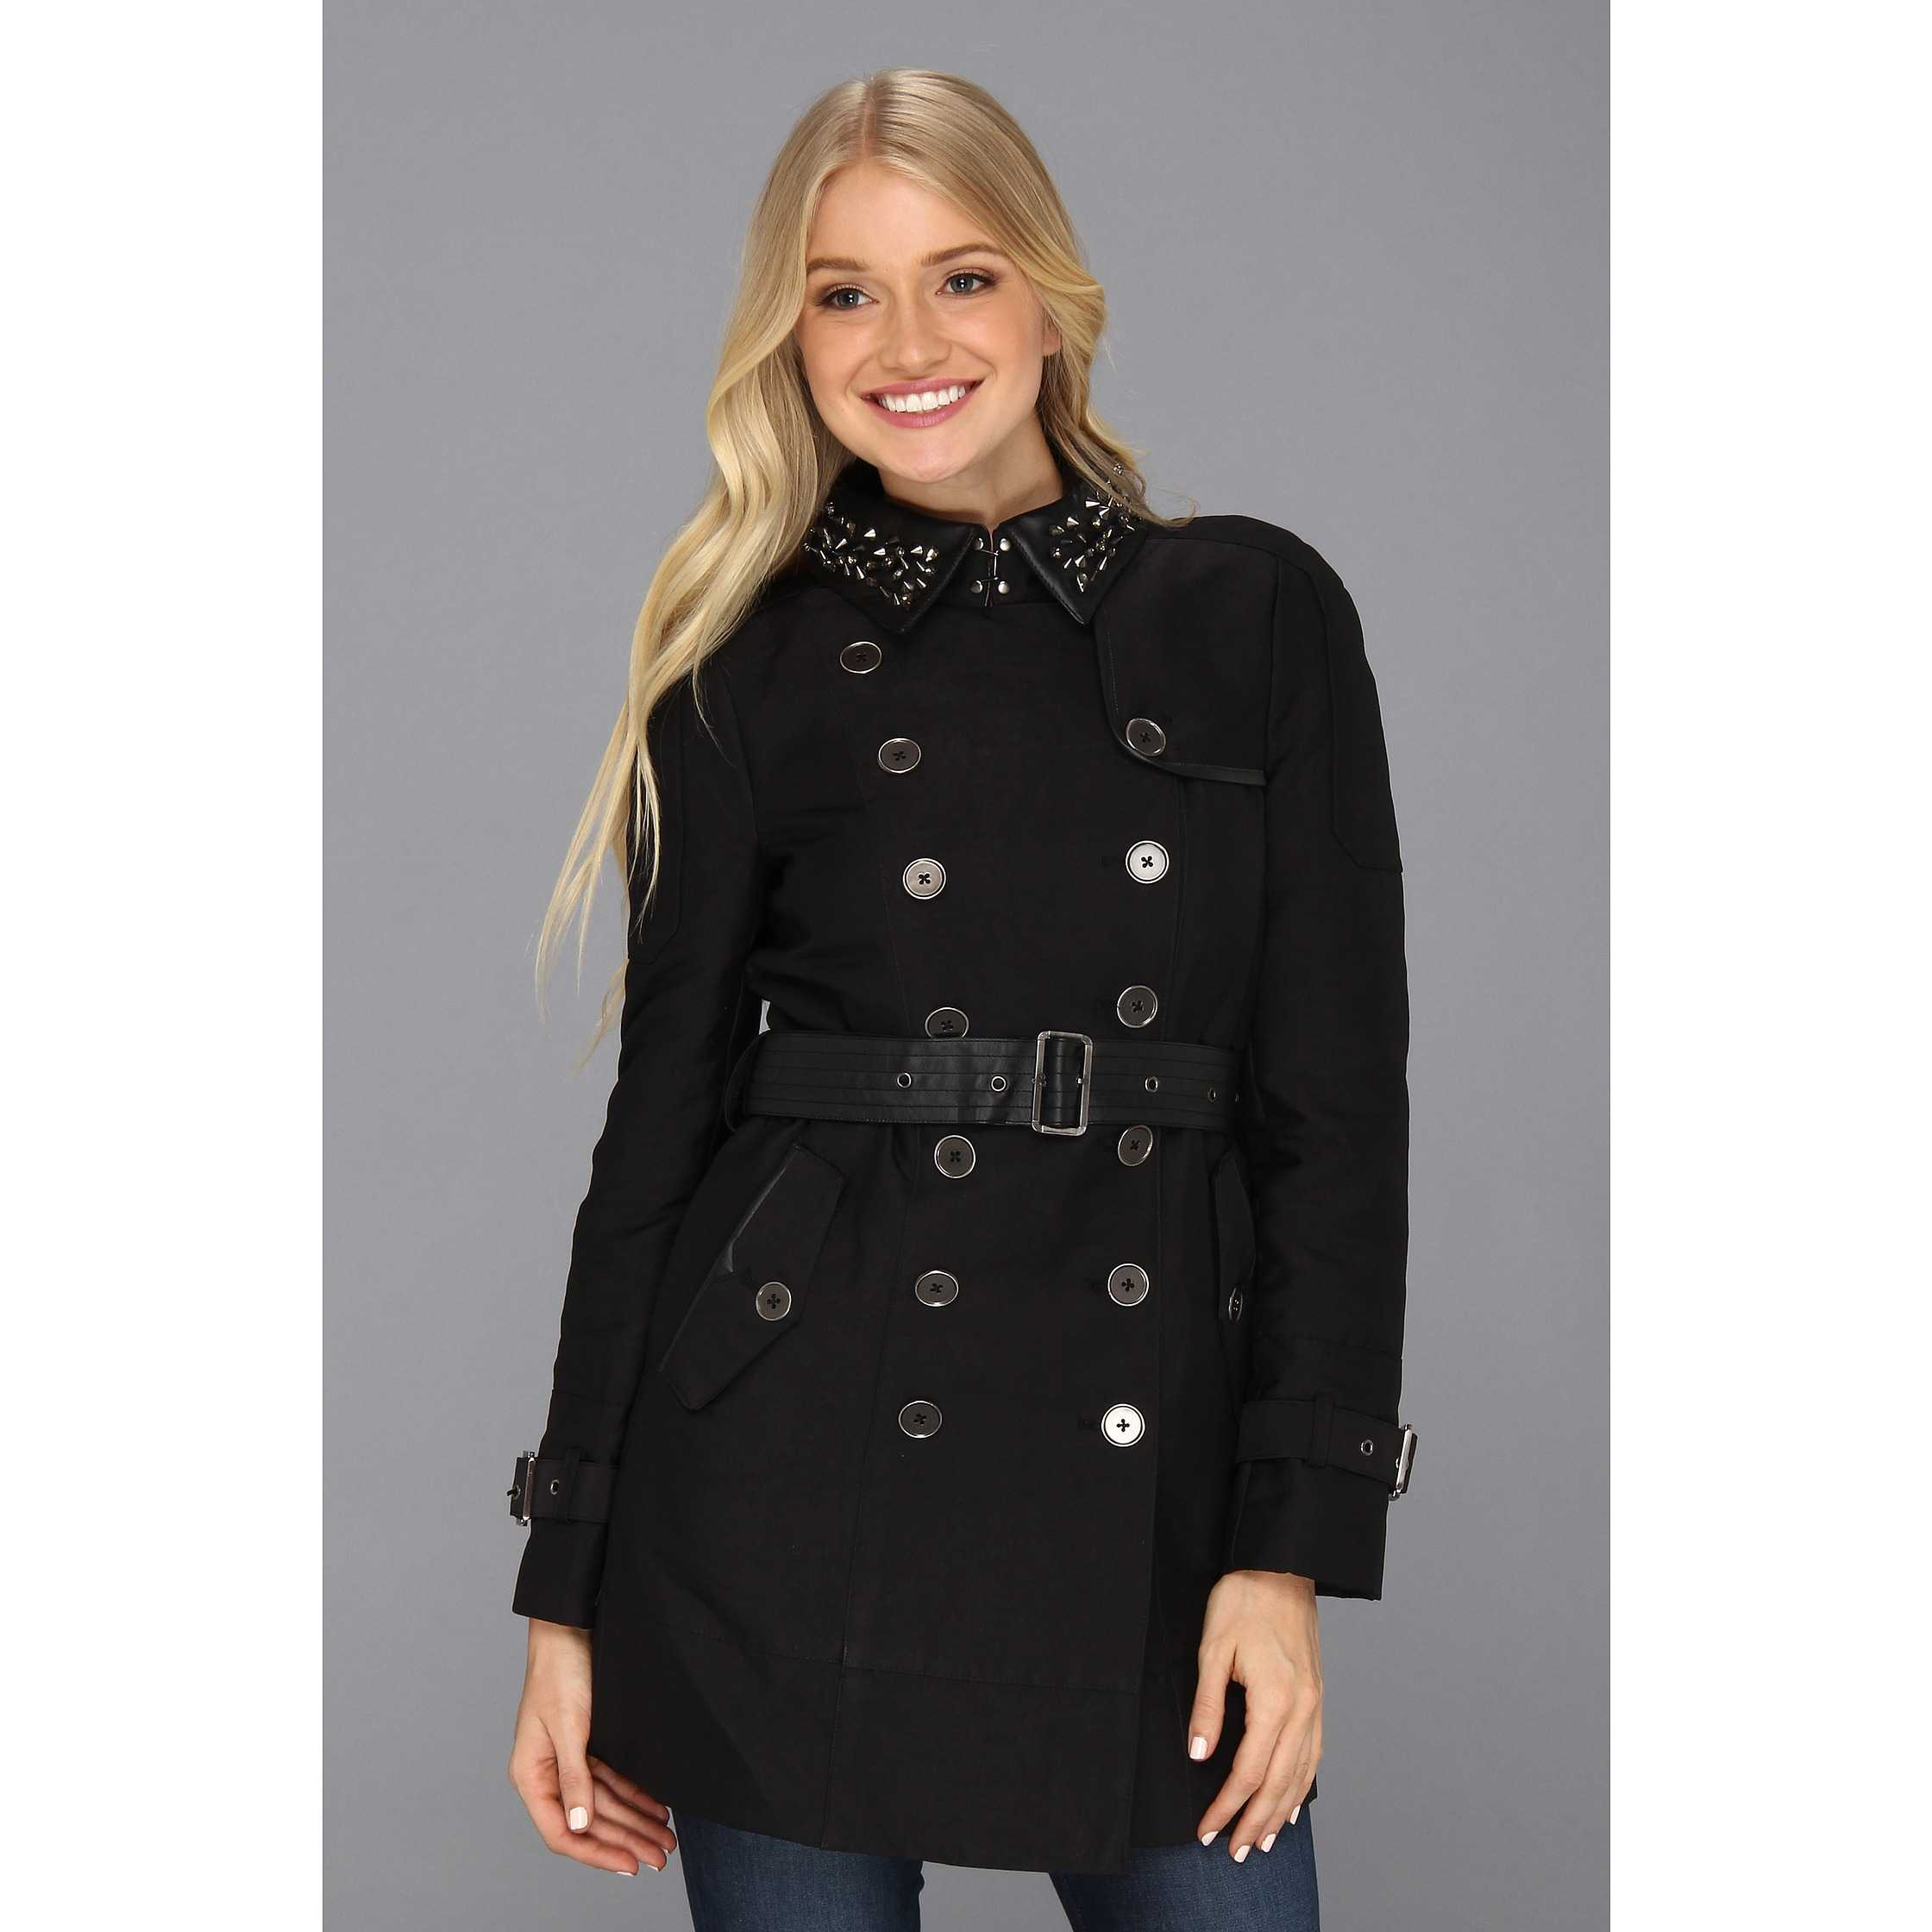 Sam Edelman Kendrix Studded Collar Trench Black trench dama